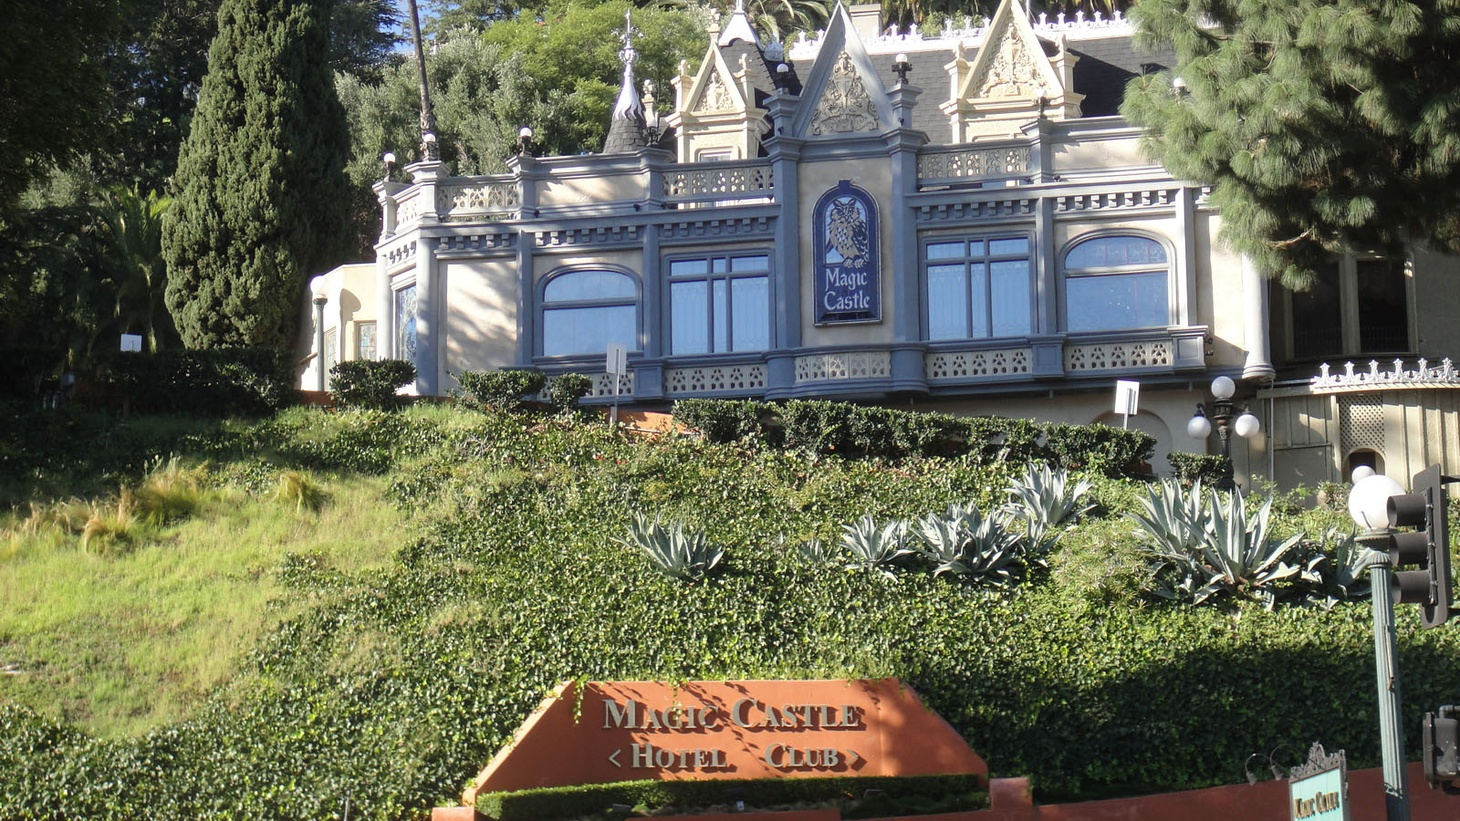 """""""I've seen some people say, 'I'd always wanted to go to the Magic Castle, I hope to one day go there.' And now I think maybe they're questioning that desire,"""" says LA Times reporter Daniel Miller."""